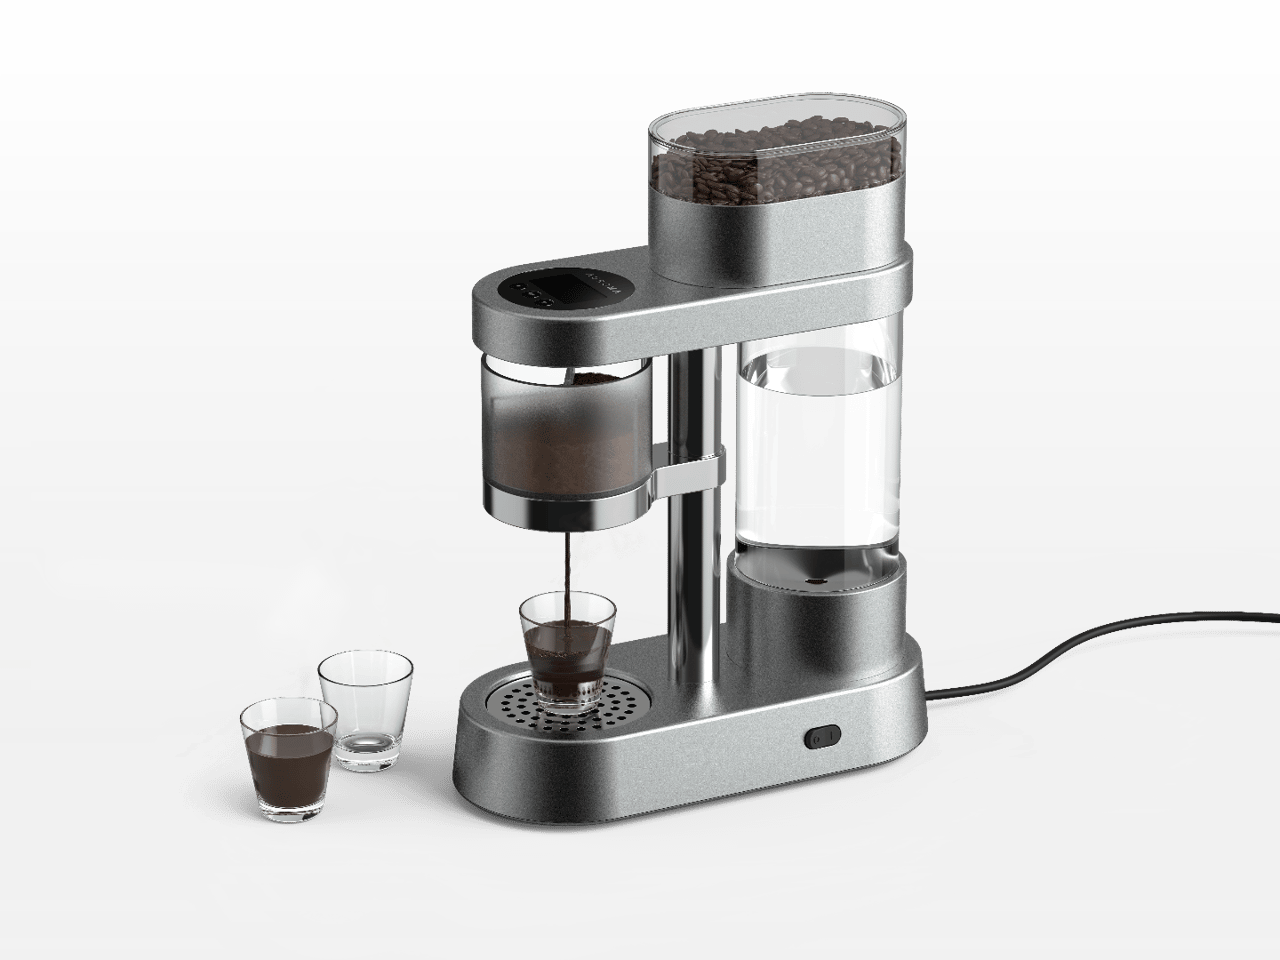 The Auroma One can set up tasting flights of three coffee types in separate shots, or one type with three different settings